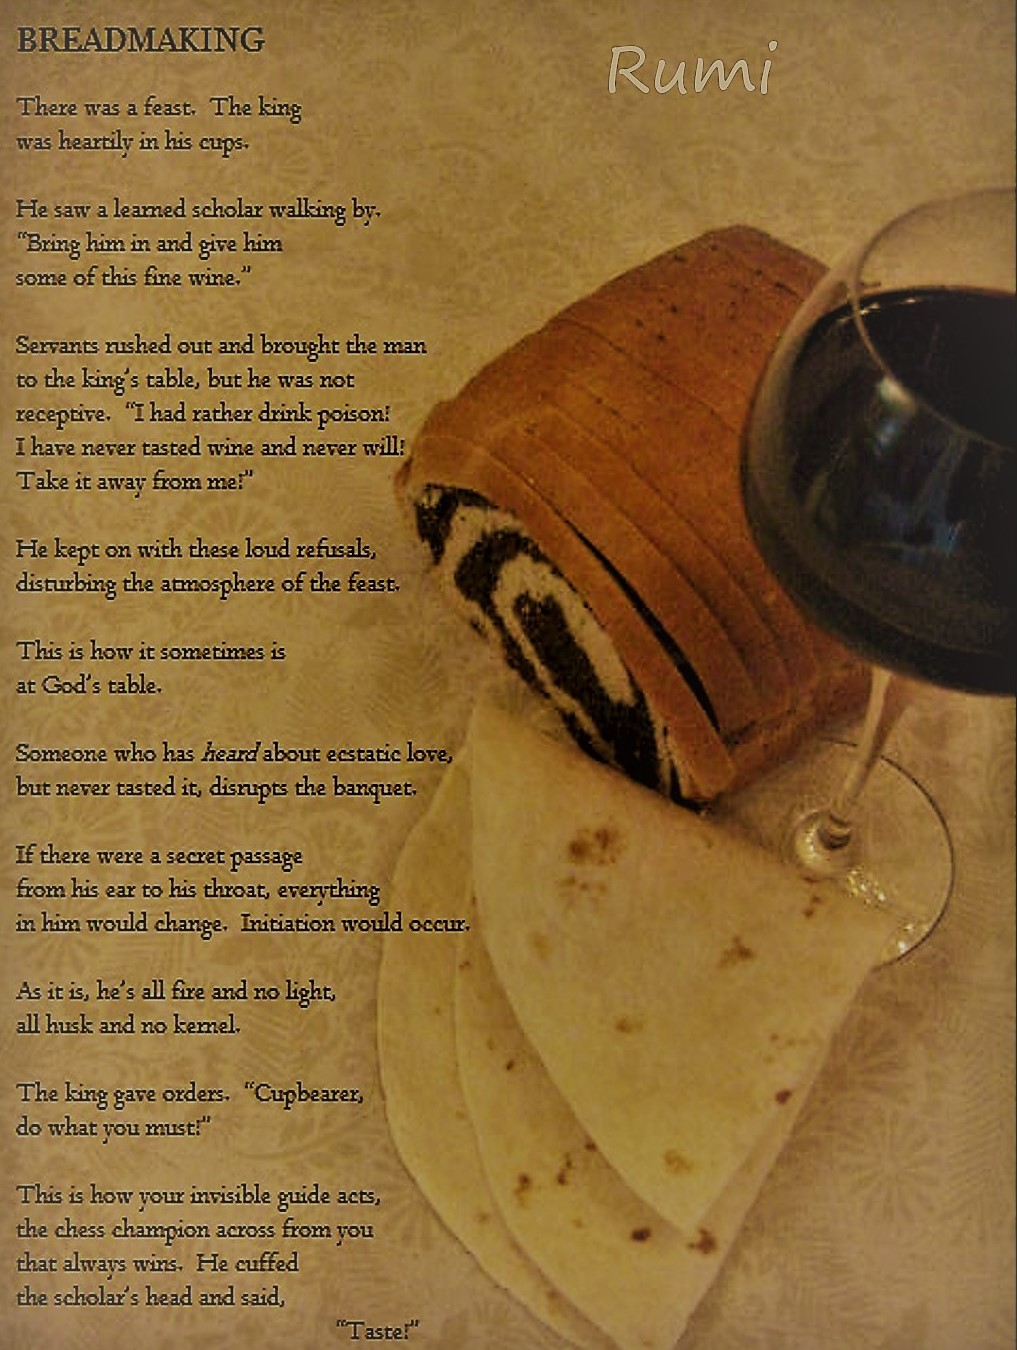 Rumi-Breadmaking-Bread-and-Wine-Spirituality